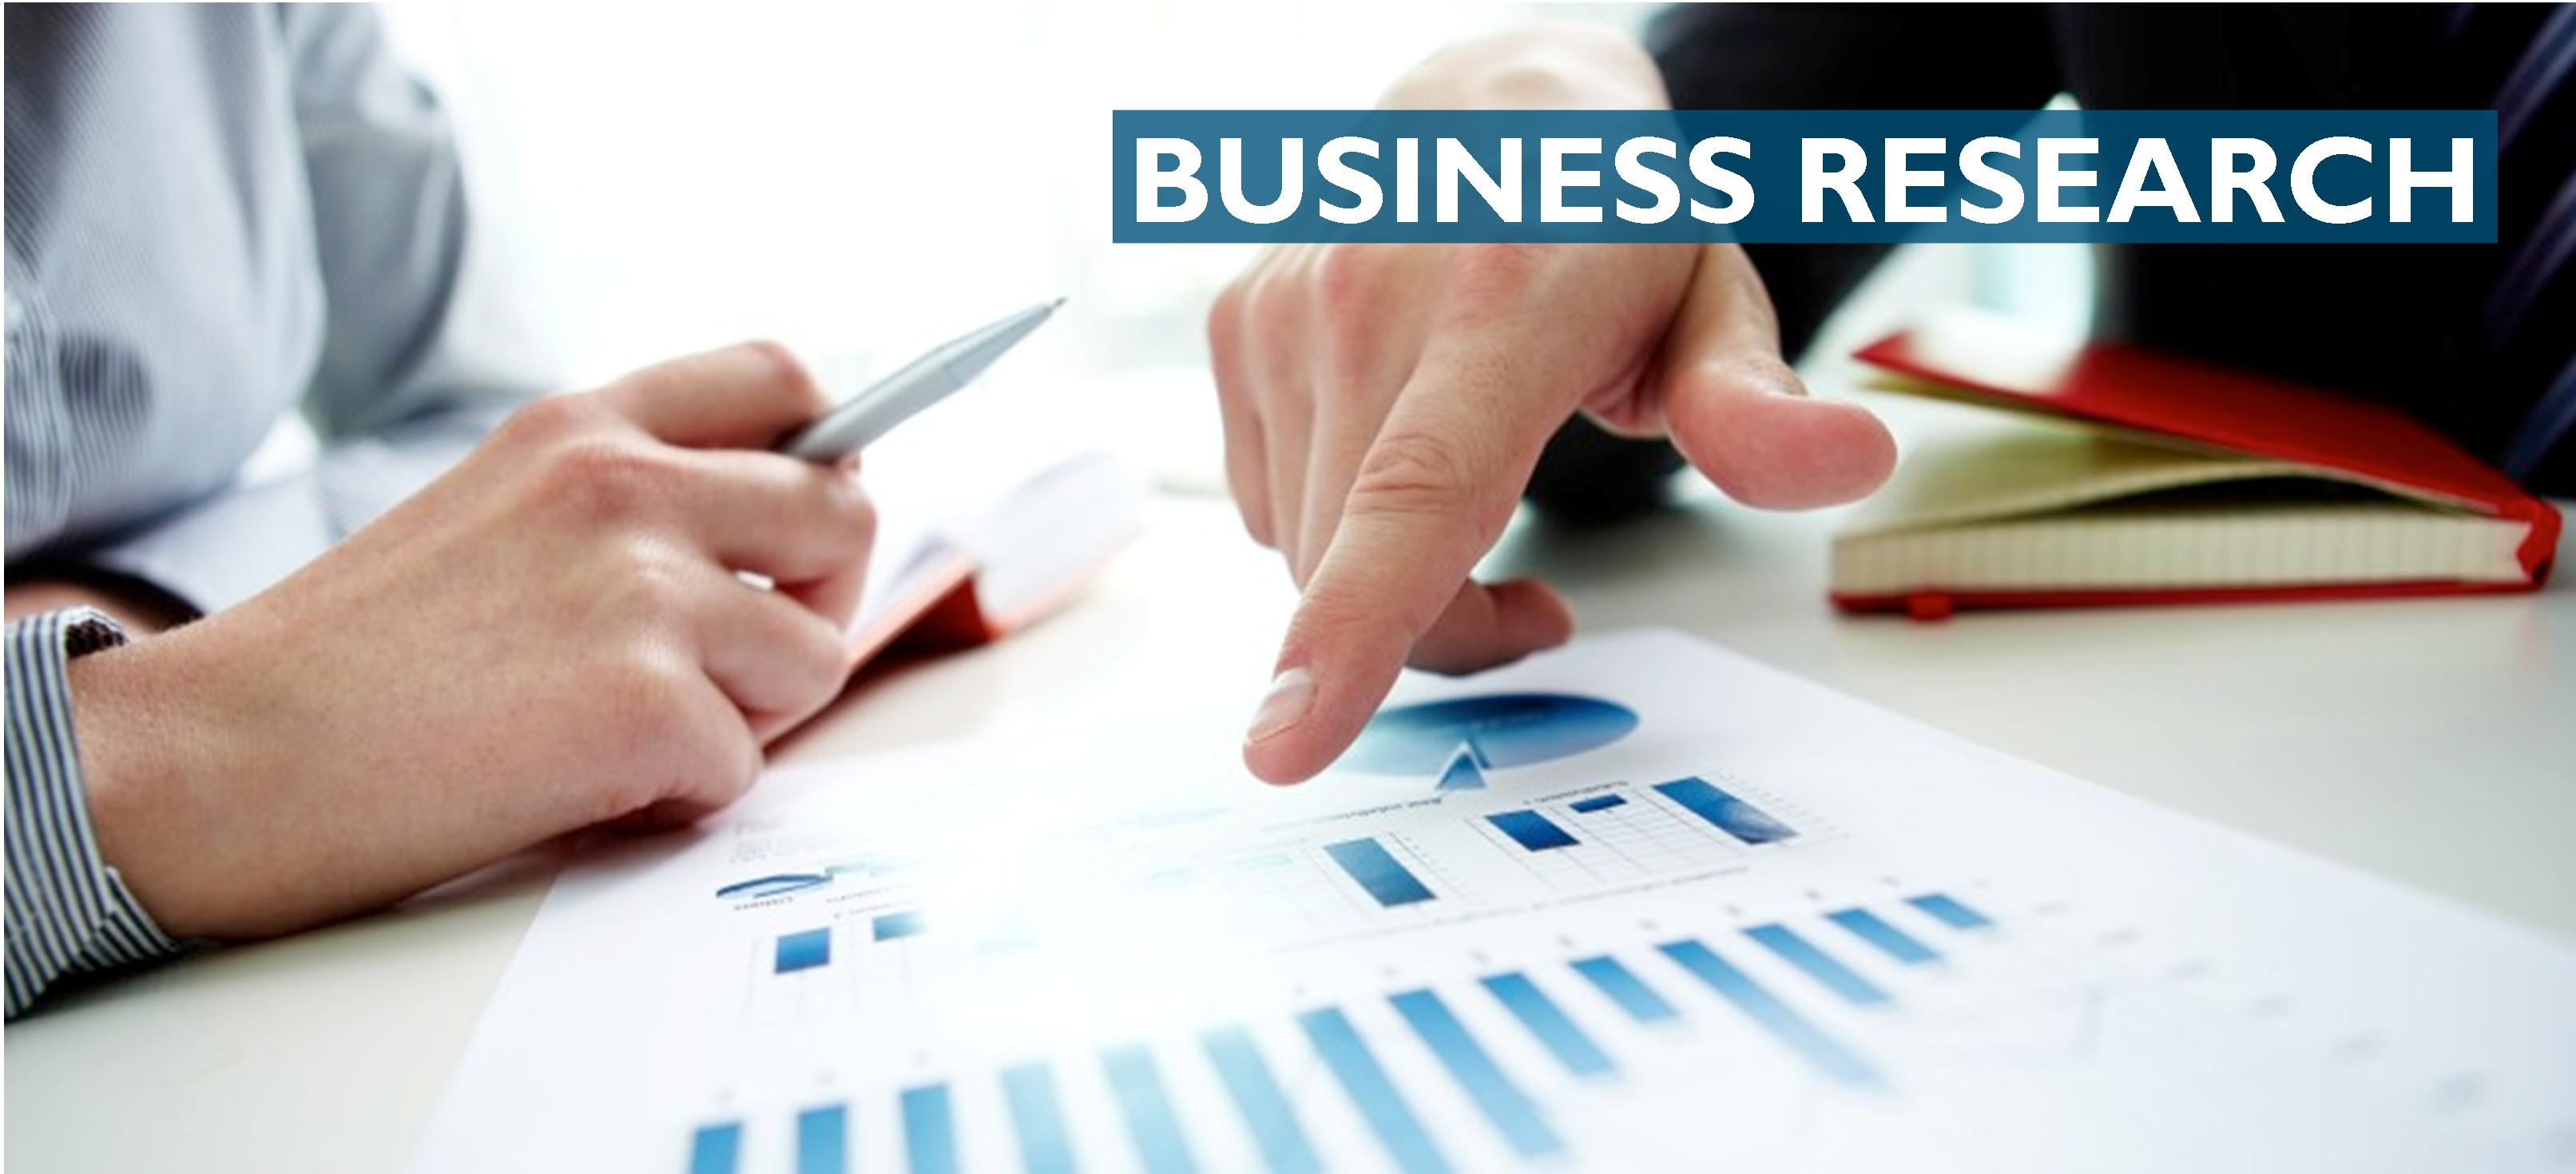 Take HI6008 Business Research Assignment Assistance From assignmentfirm.com